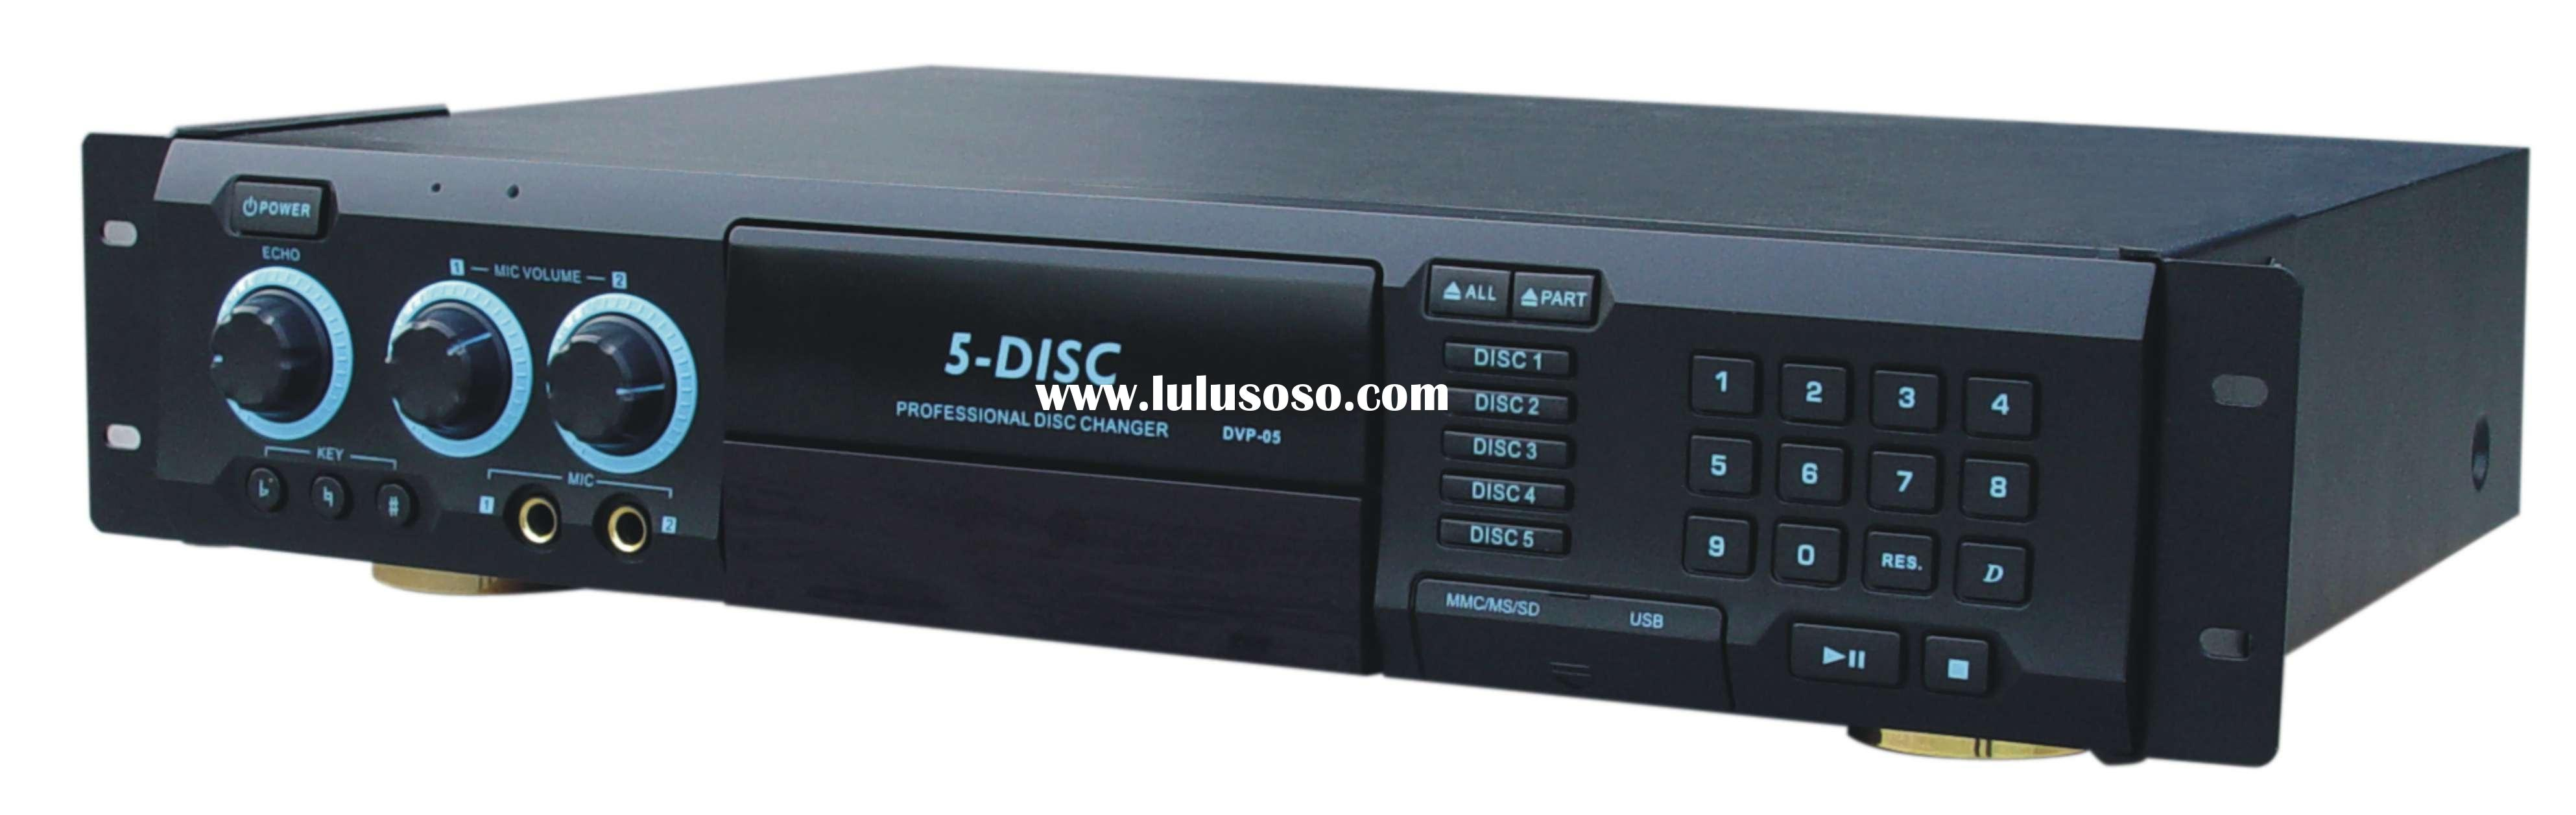 DVD / DIVX Player 5-Disc Changer with karaoke function & USB & card Reader(DVP-05)